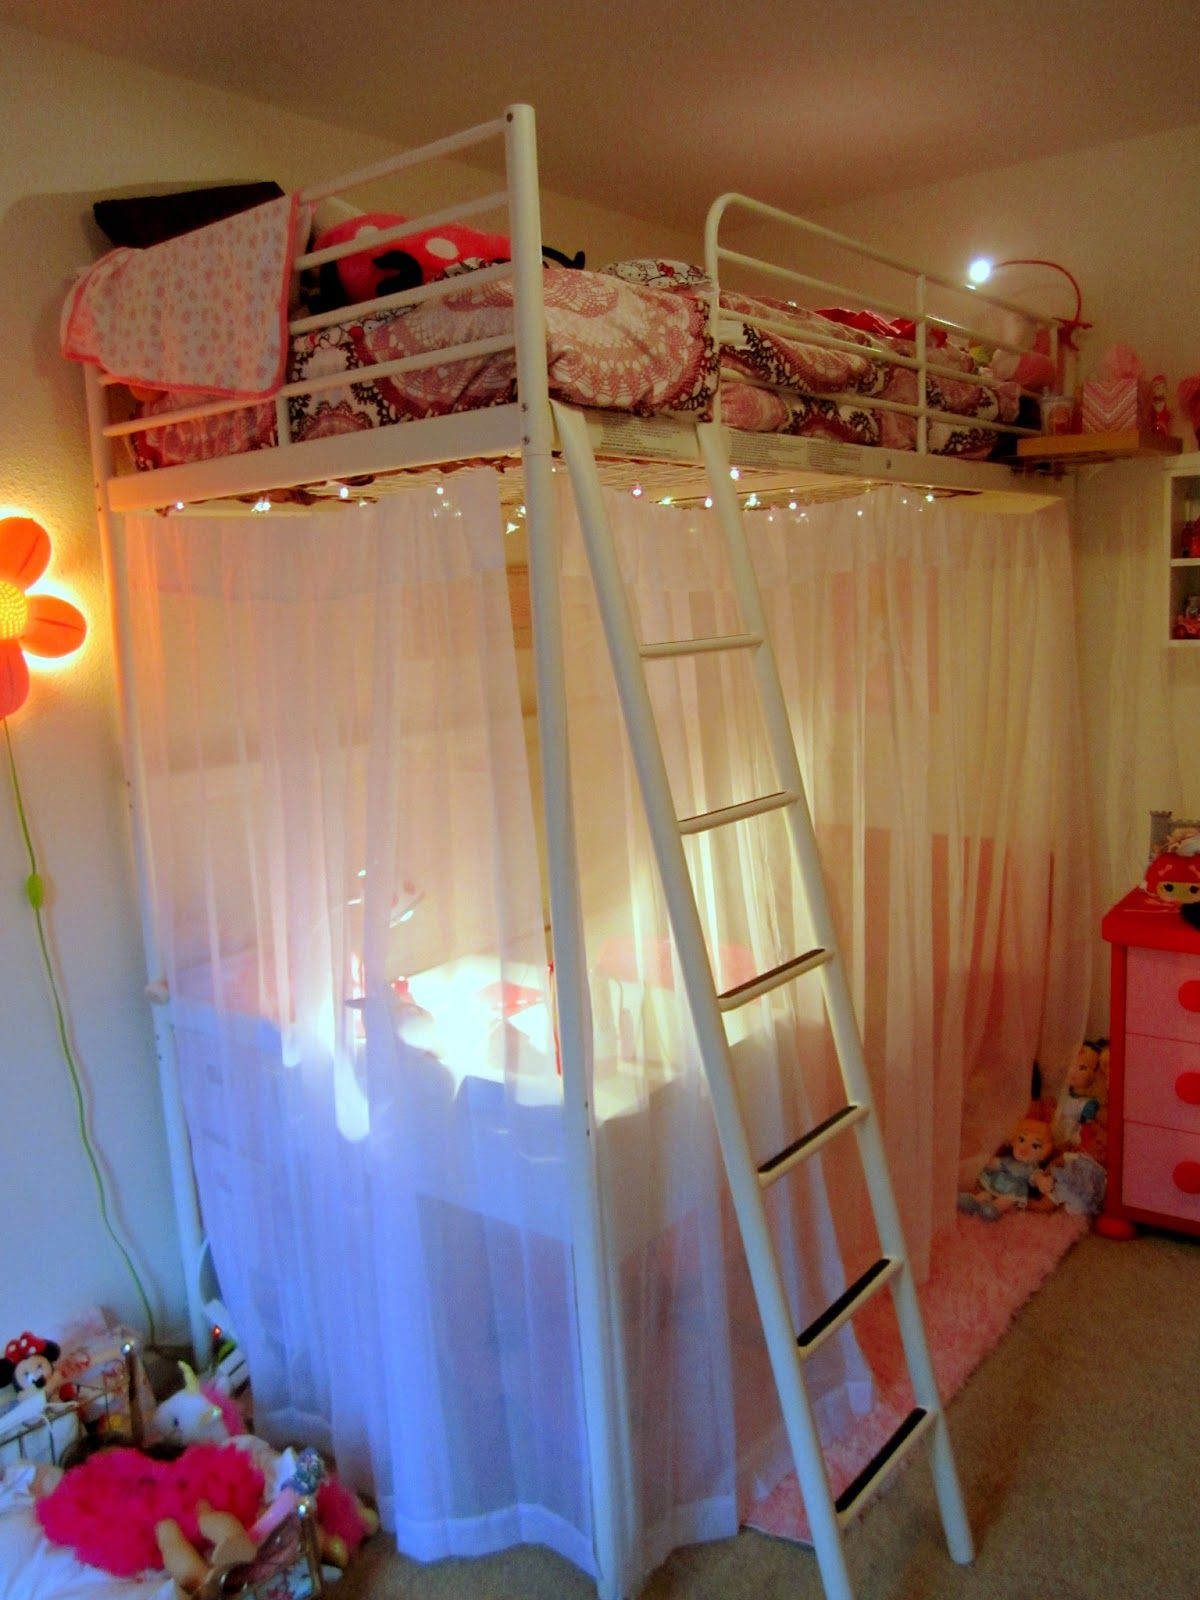 Loft bed decorating ideas  IMGJPG   Cabanas  Pinterest  Bedrooms Room and